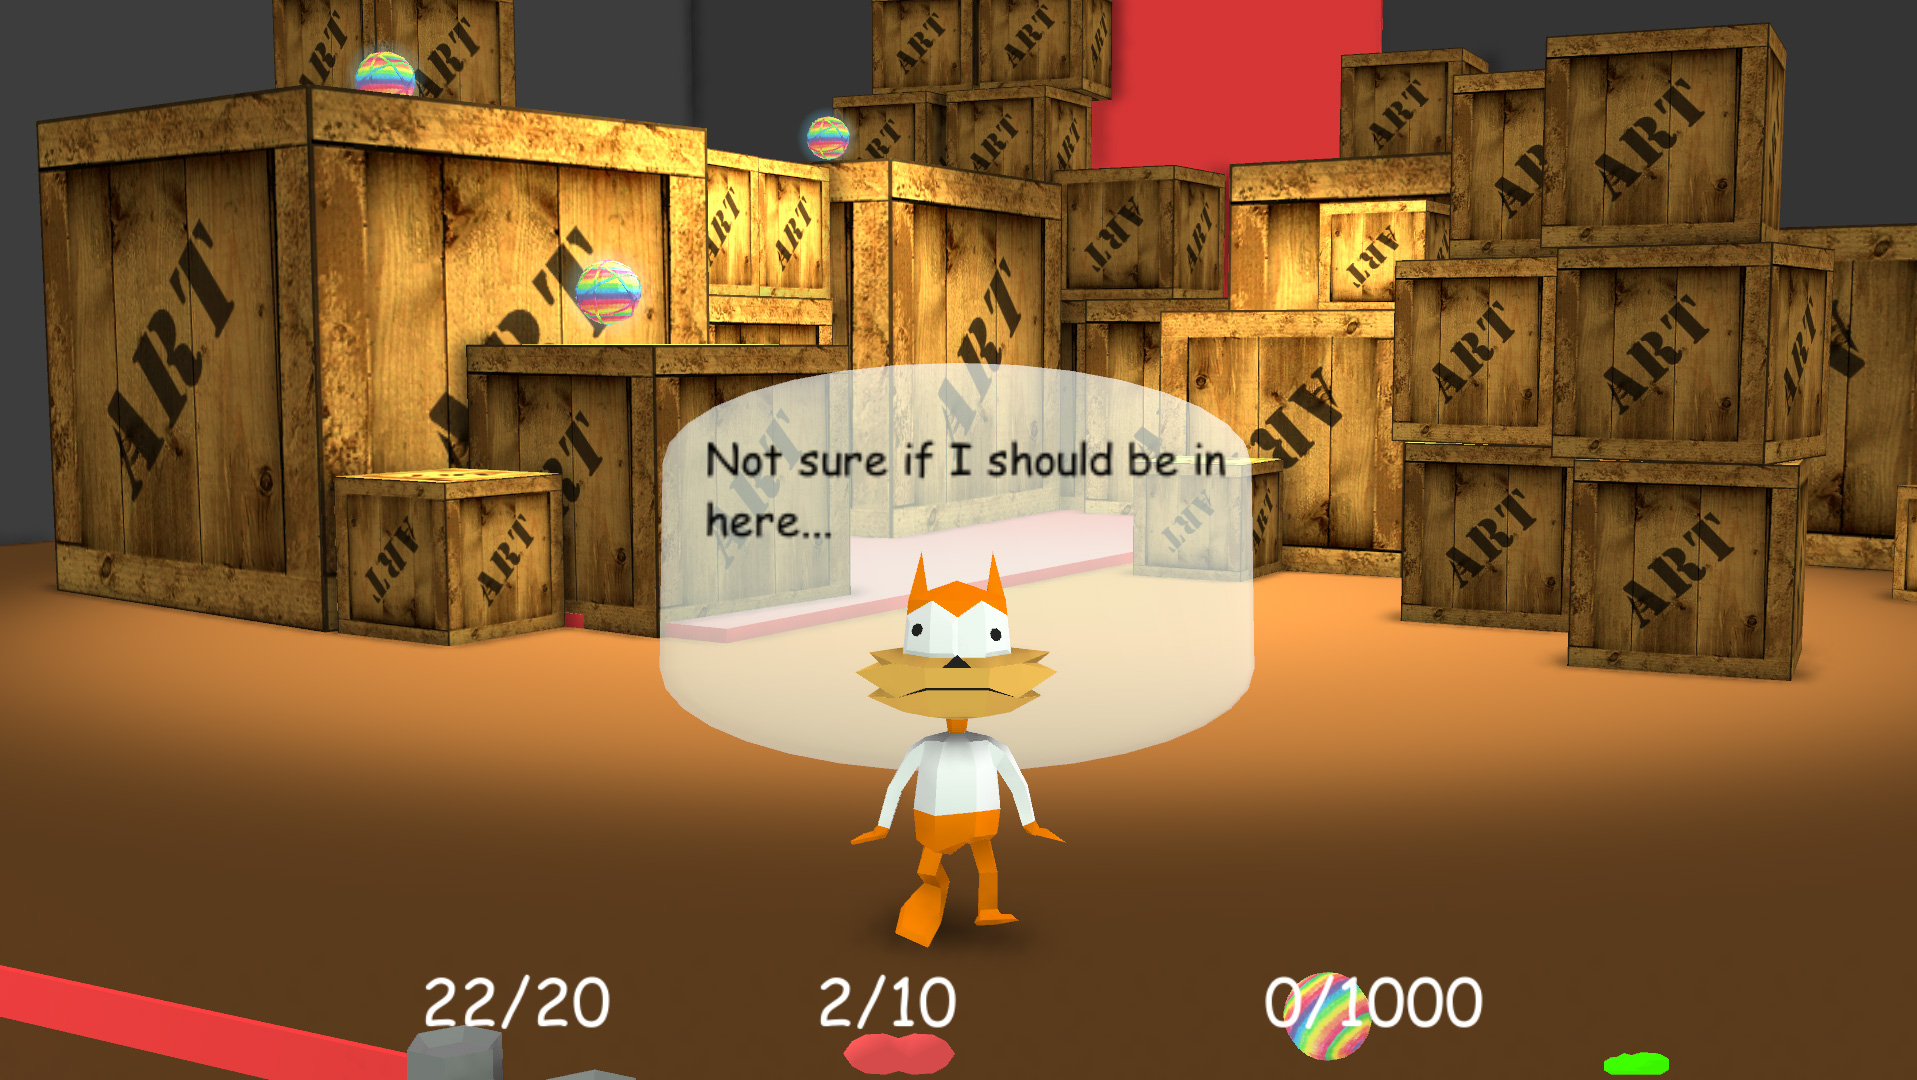 Descend into madness with Arcane Kids' newly remastered Bubsy 3D screenshot